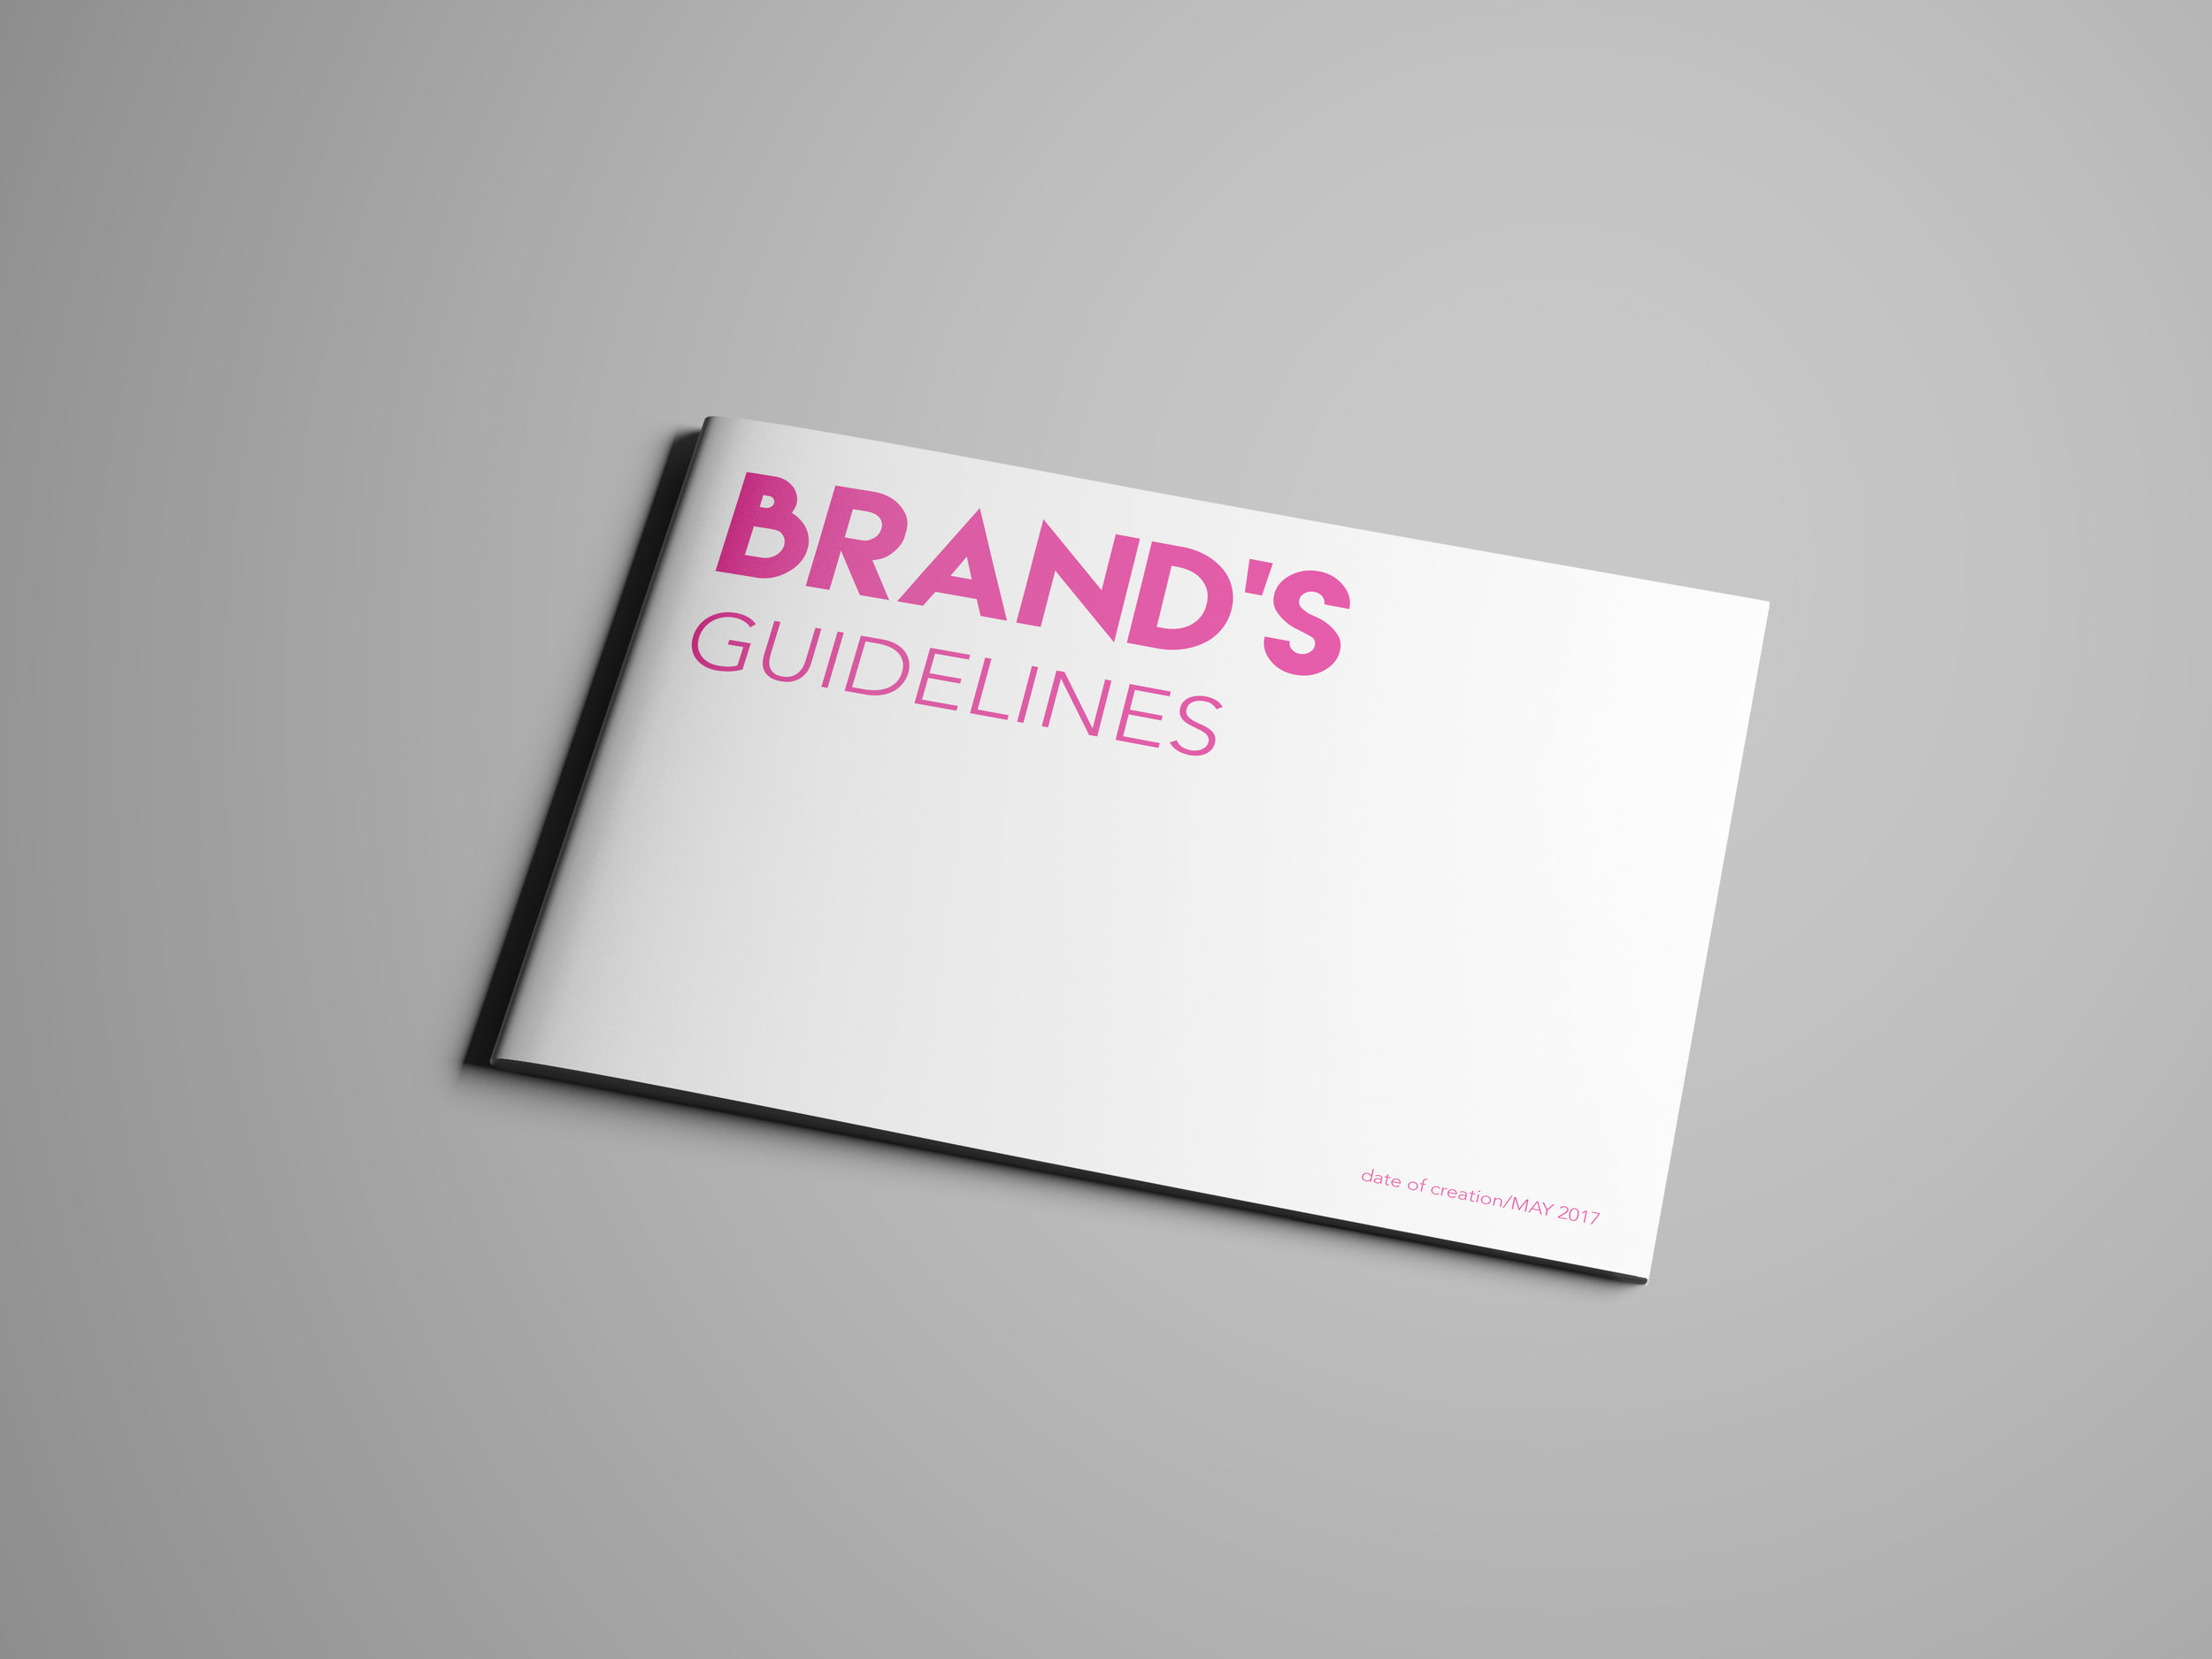 Brand Guidelines - The Brand Guidelines is a document that helps the company to use their visual identity on a day-to-day basis in order to stay